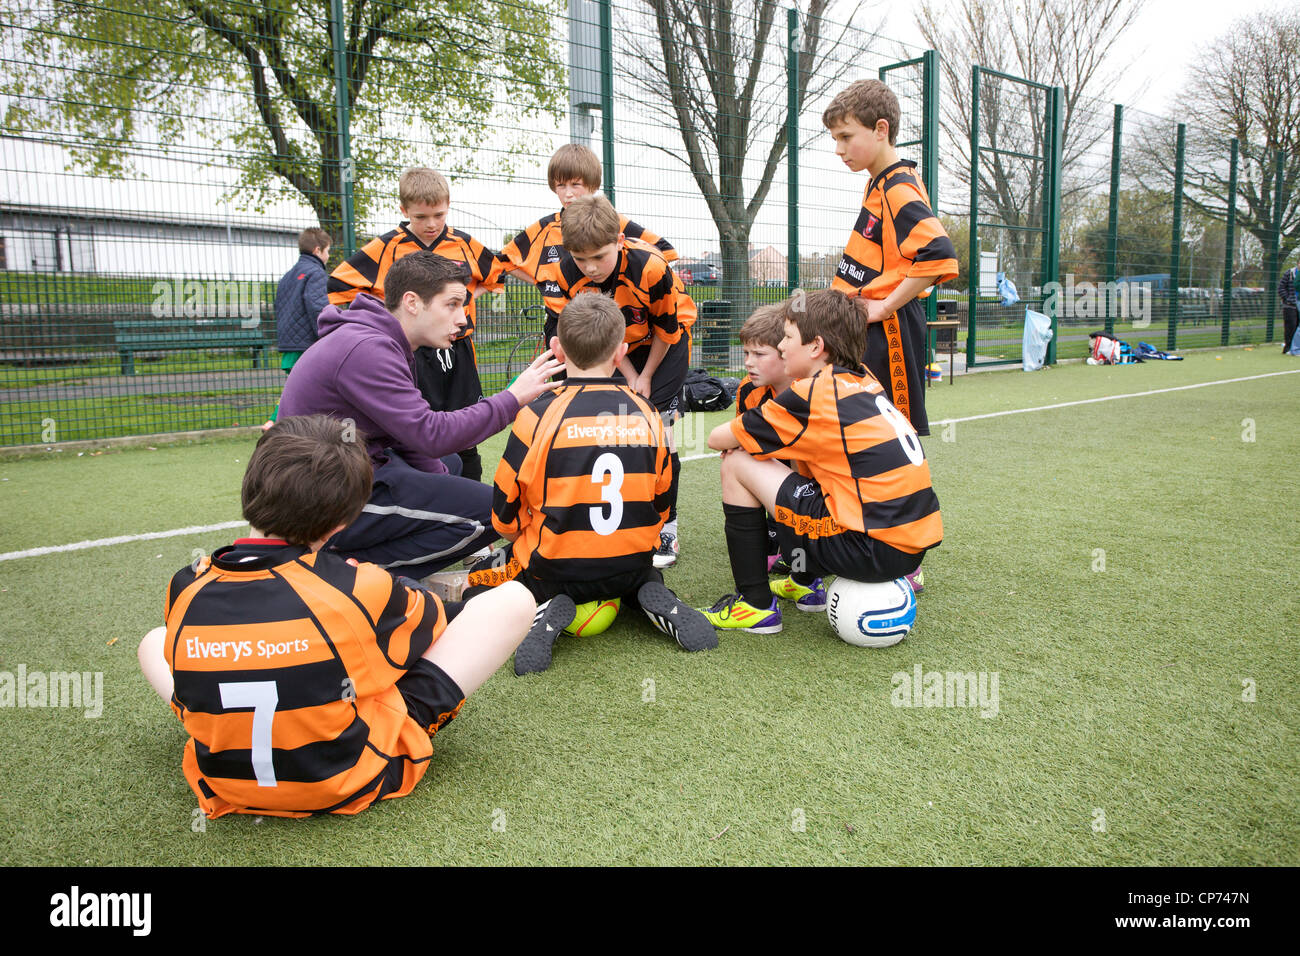 A coach talking tactics to team of young soccer players/footballers. - Stock Image